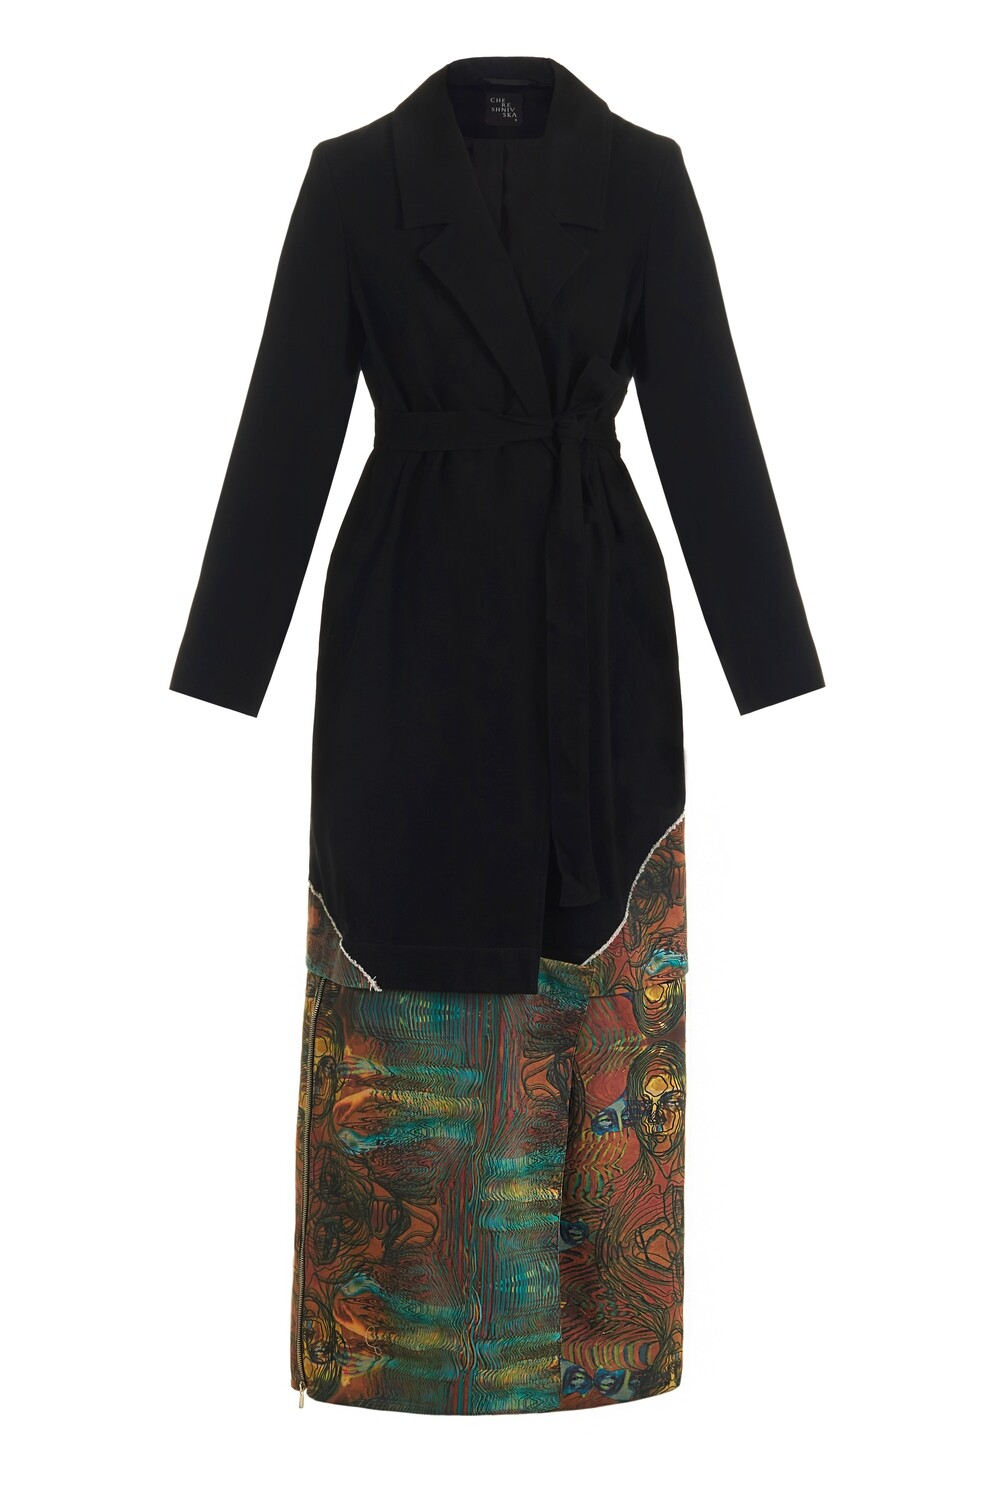 Black trench with a print